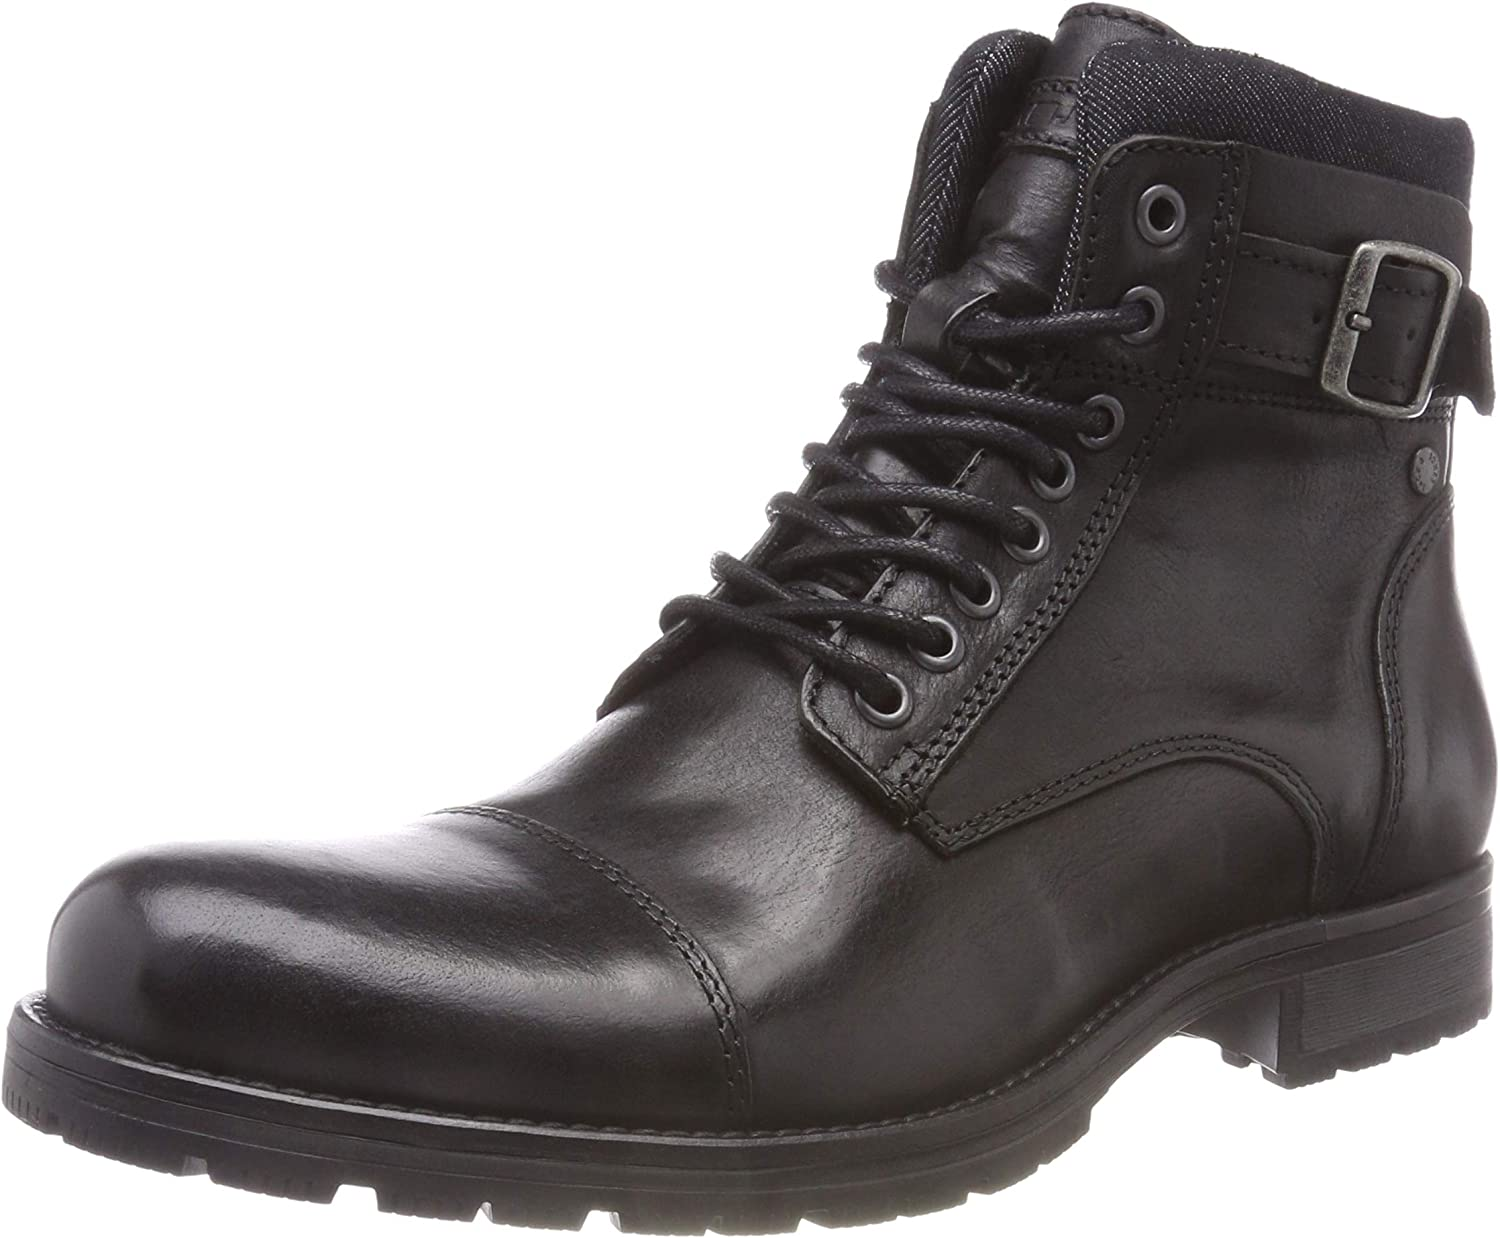 Jack & Jones Jfwalbany Leather Anthracite STS, Botas Estilo Motero para Hombre